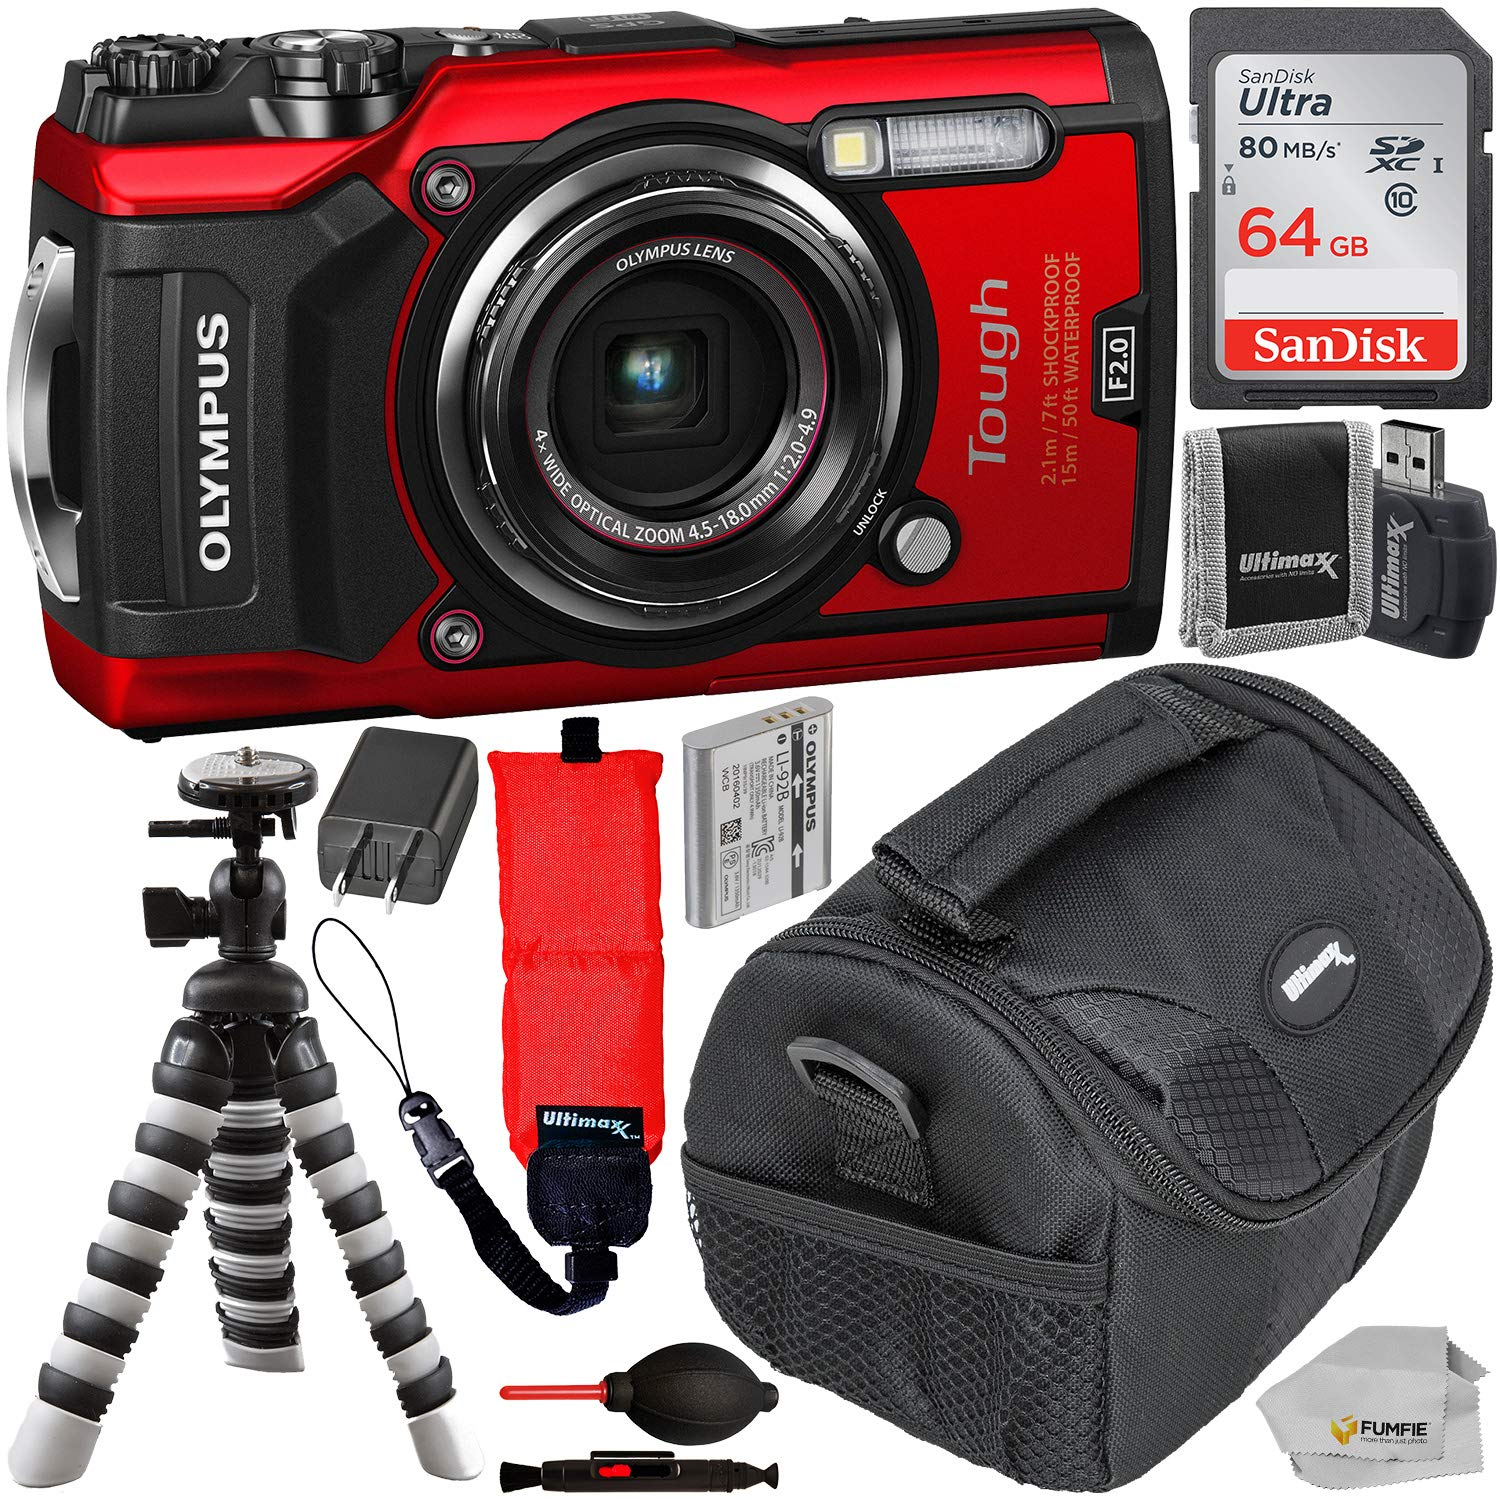 Olympus Digital Camera 5 Amazon.com : Olympus Waterproof Tough TG-5 Digital Camera (Red) with  SanDisk Ultra 64GB SDXC UHS-I Memory Card, Floating Wrist Strap, More :  Camera u0026 Photo